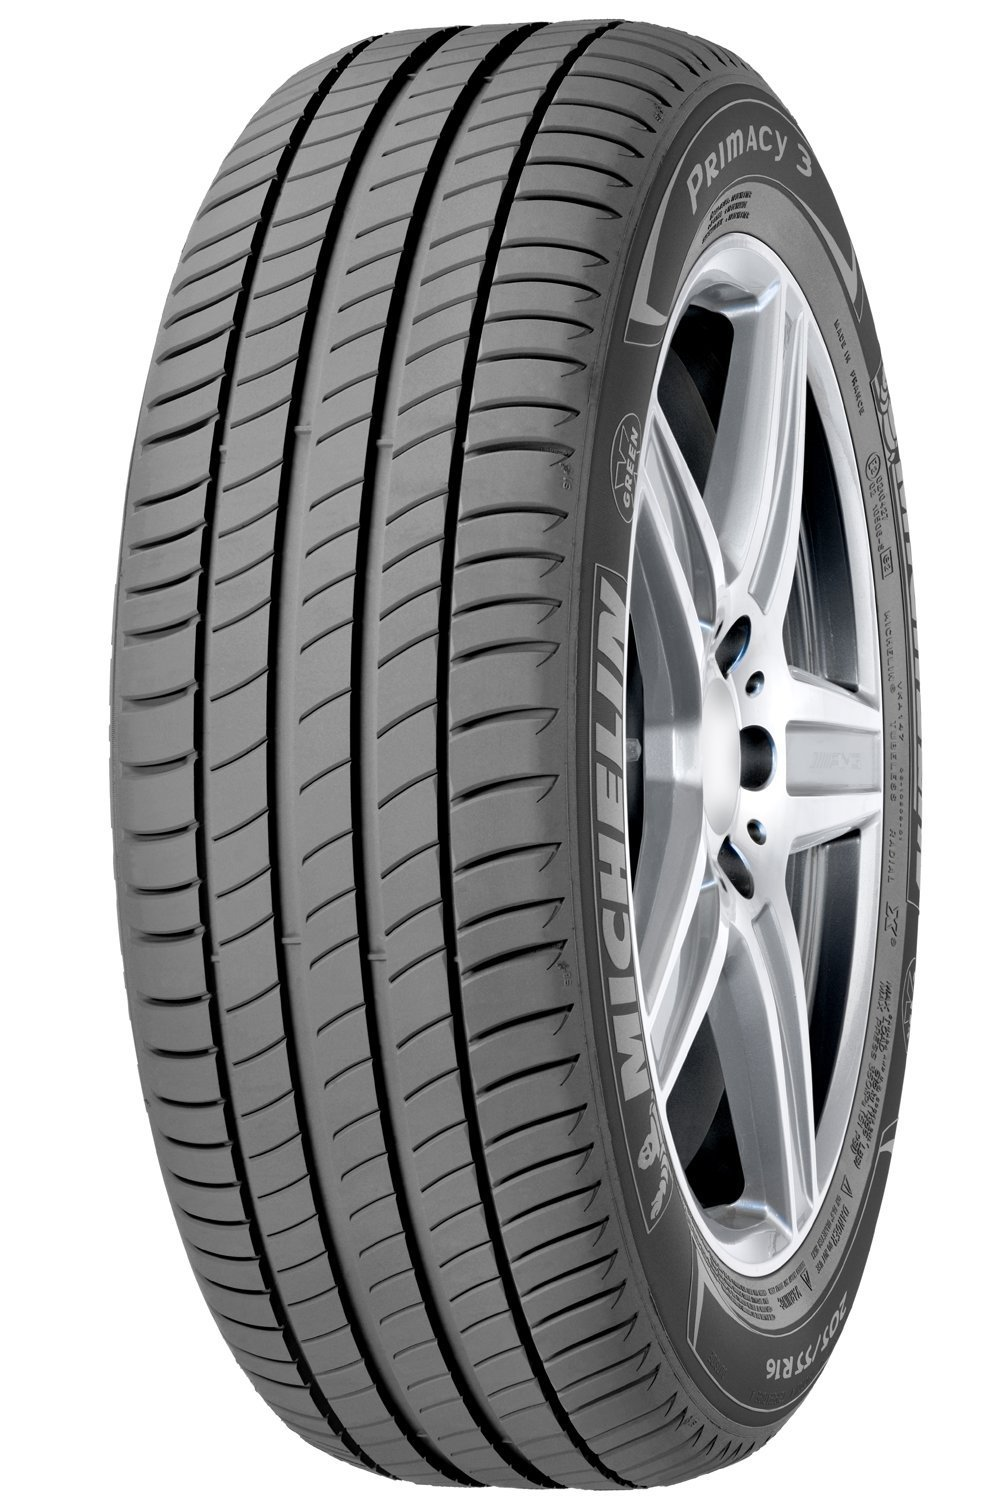 Anvelopa vara MICHELIN PRIMACY 3 175/65 R14 82T